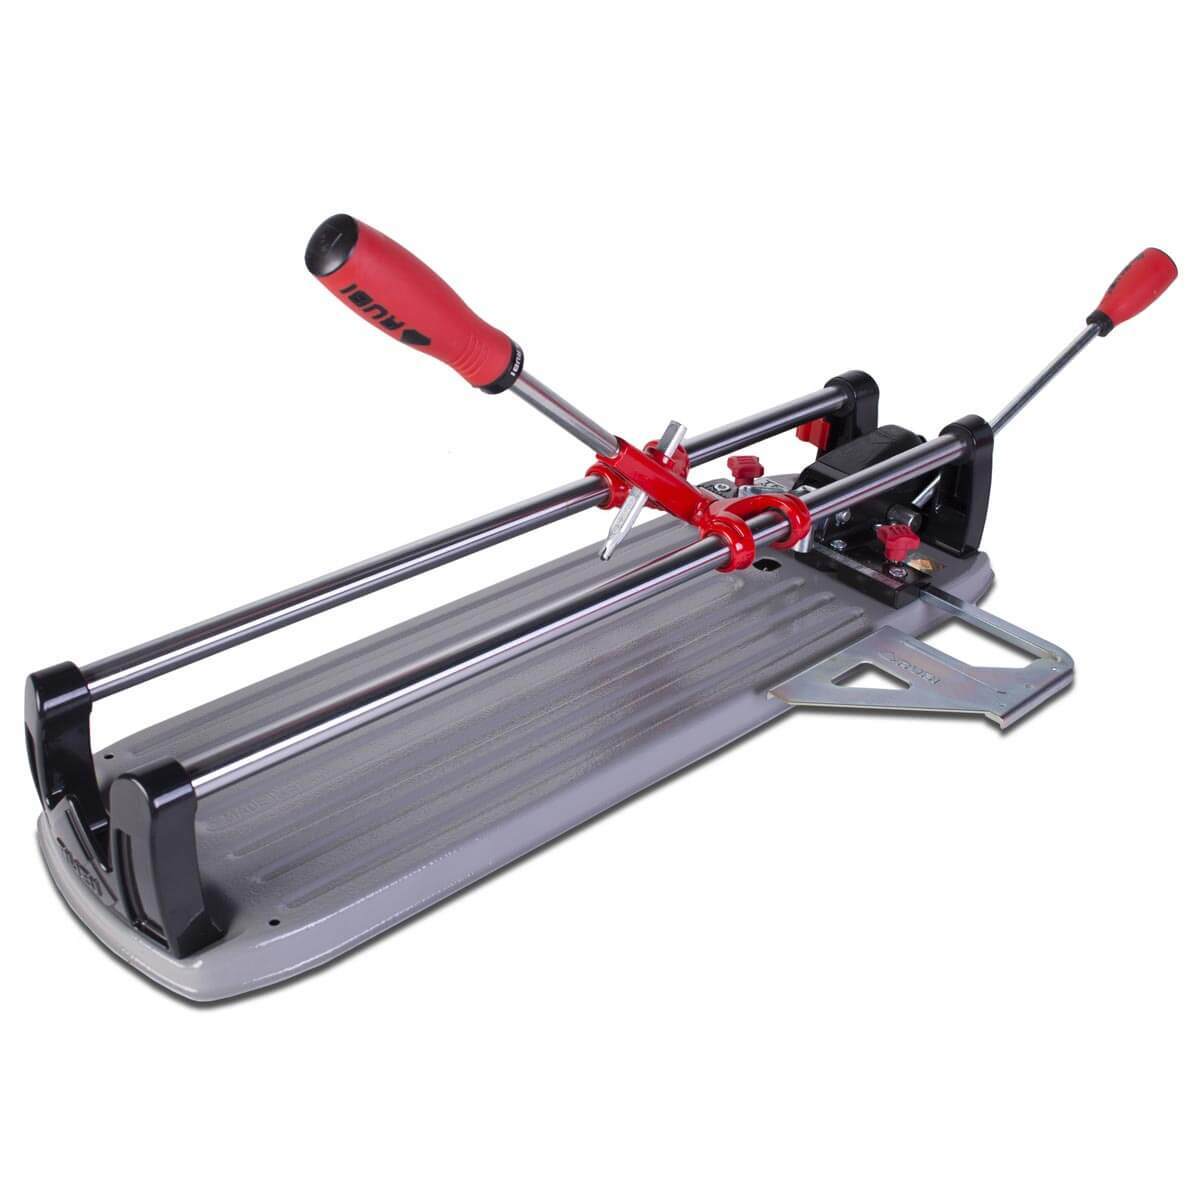 Rubi tools ts max tile cutters contractors direct rubi ts max ceramic tile cutter dailygadgetfo Gallery